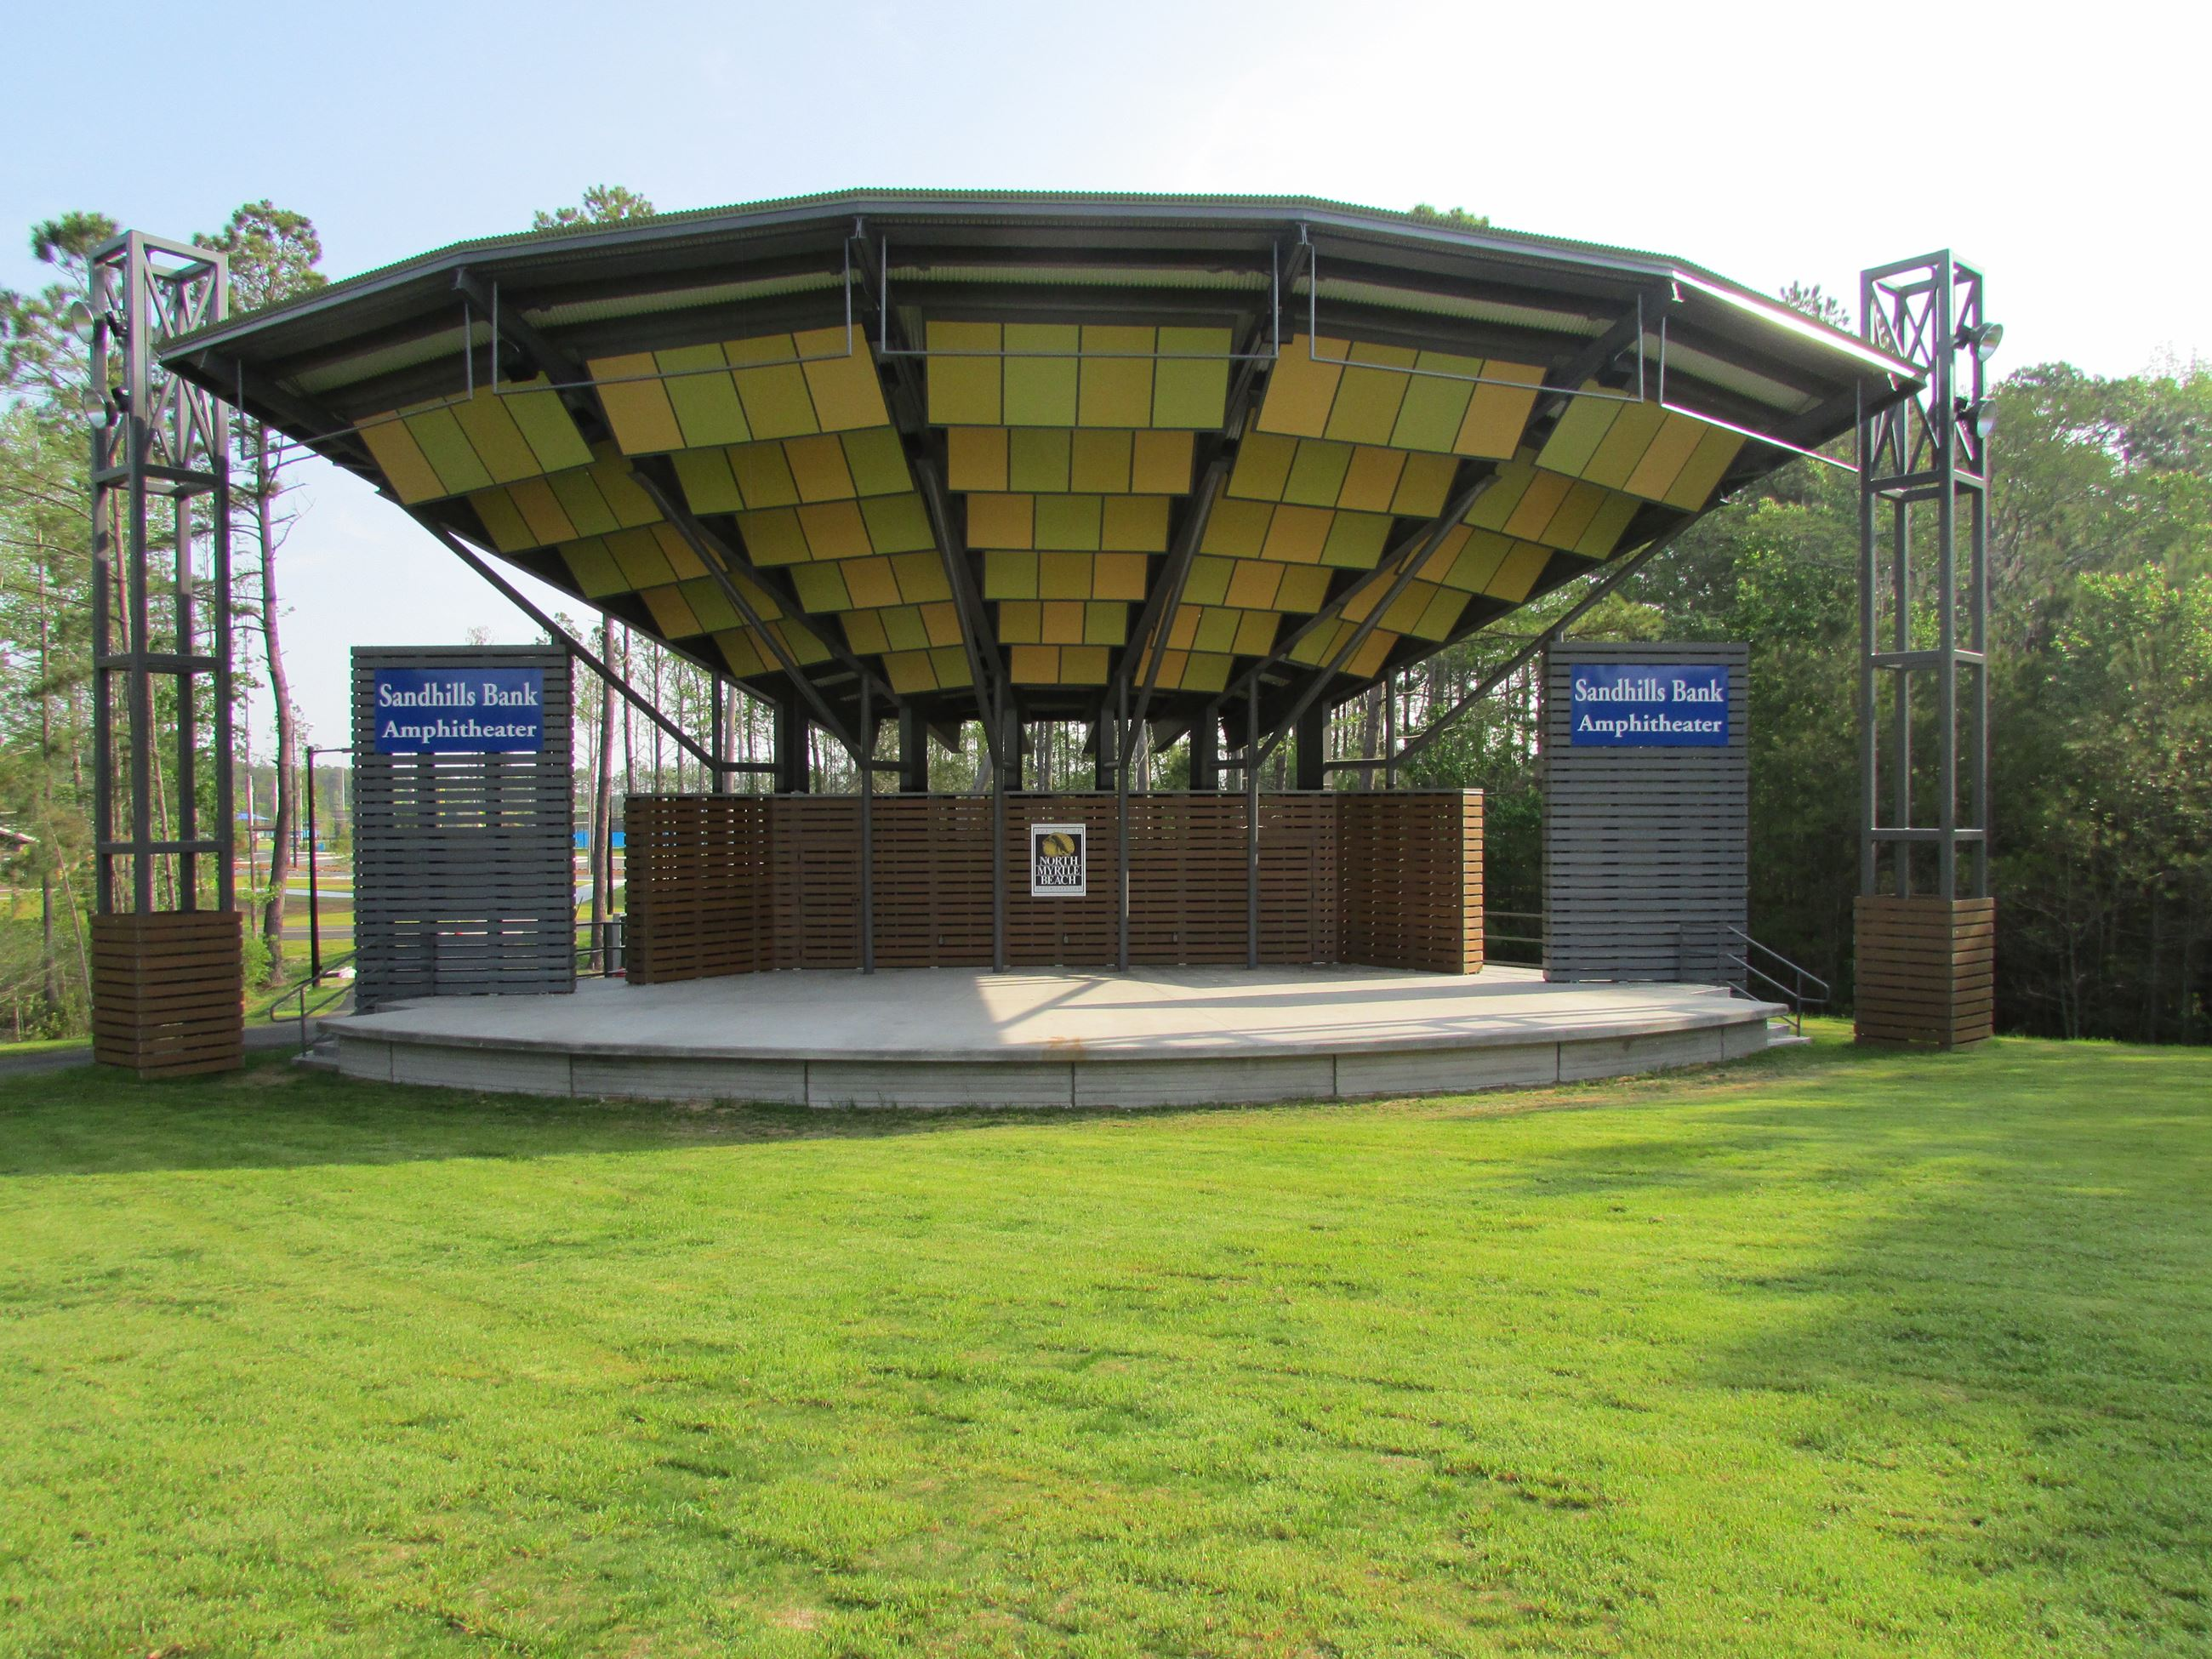 Sandhills Bank Amphitheater